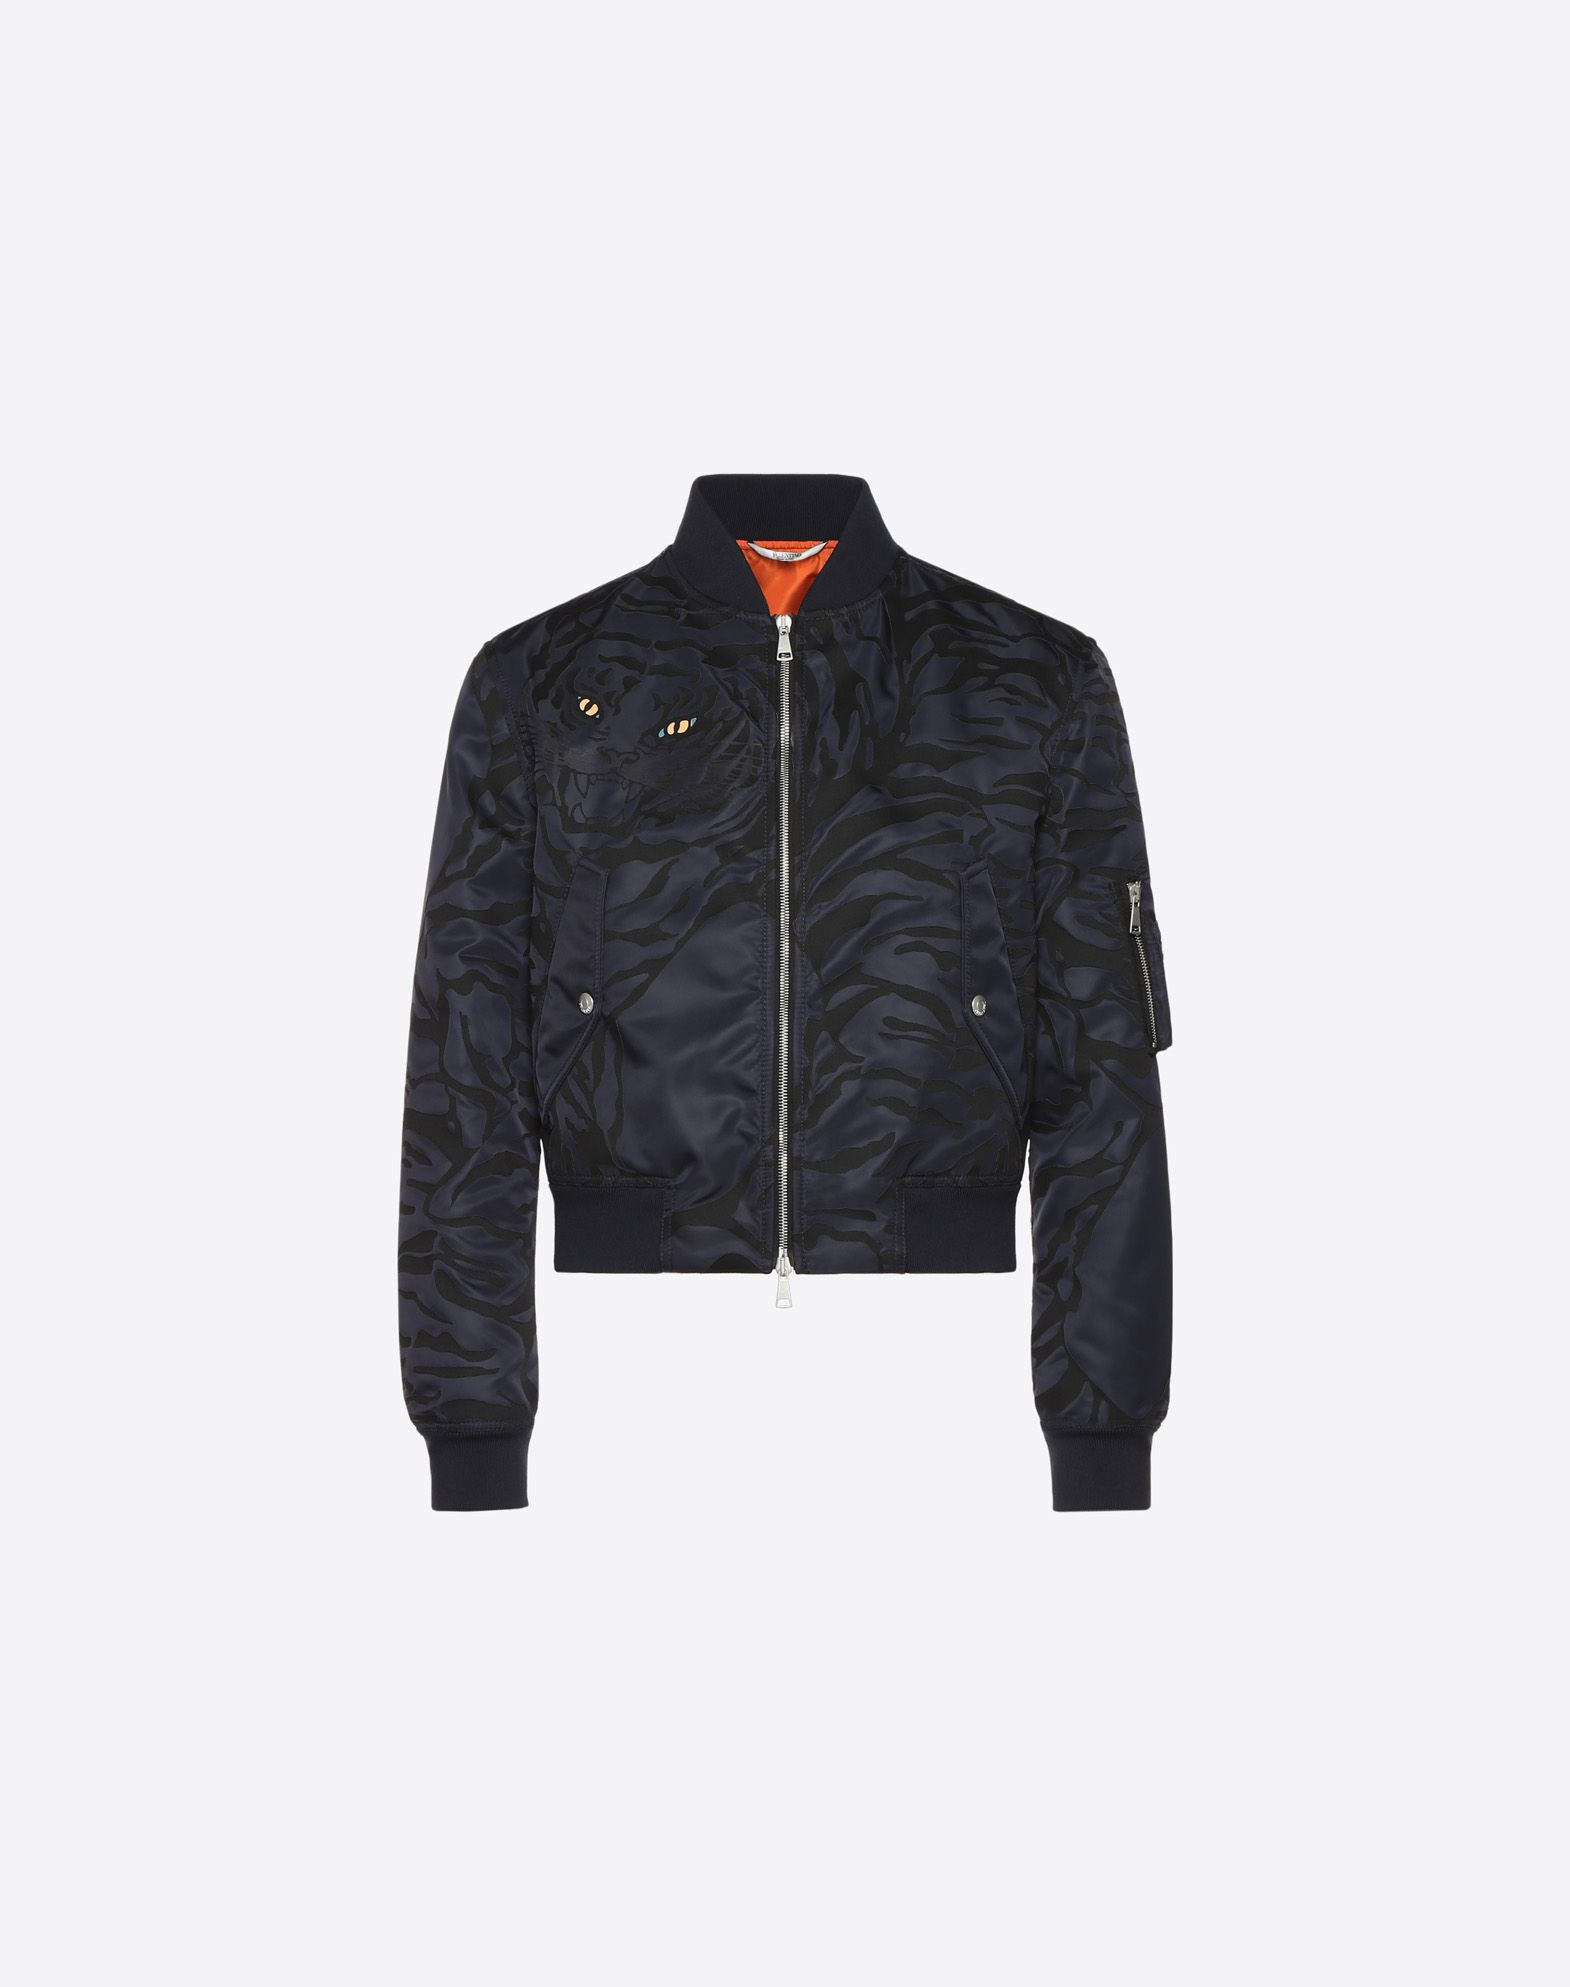 BLOUSON WITH HEAT-SEALED TIGER